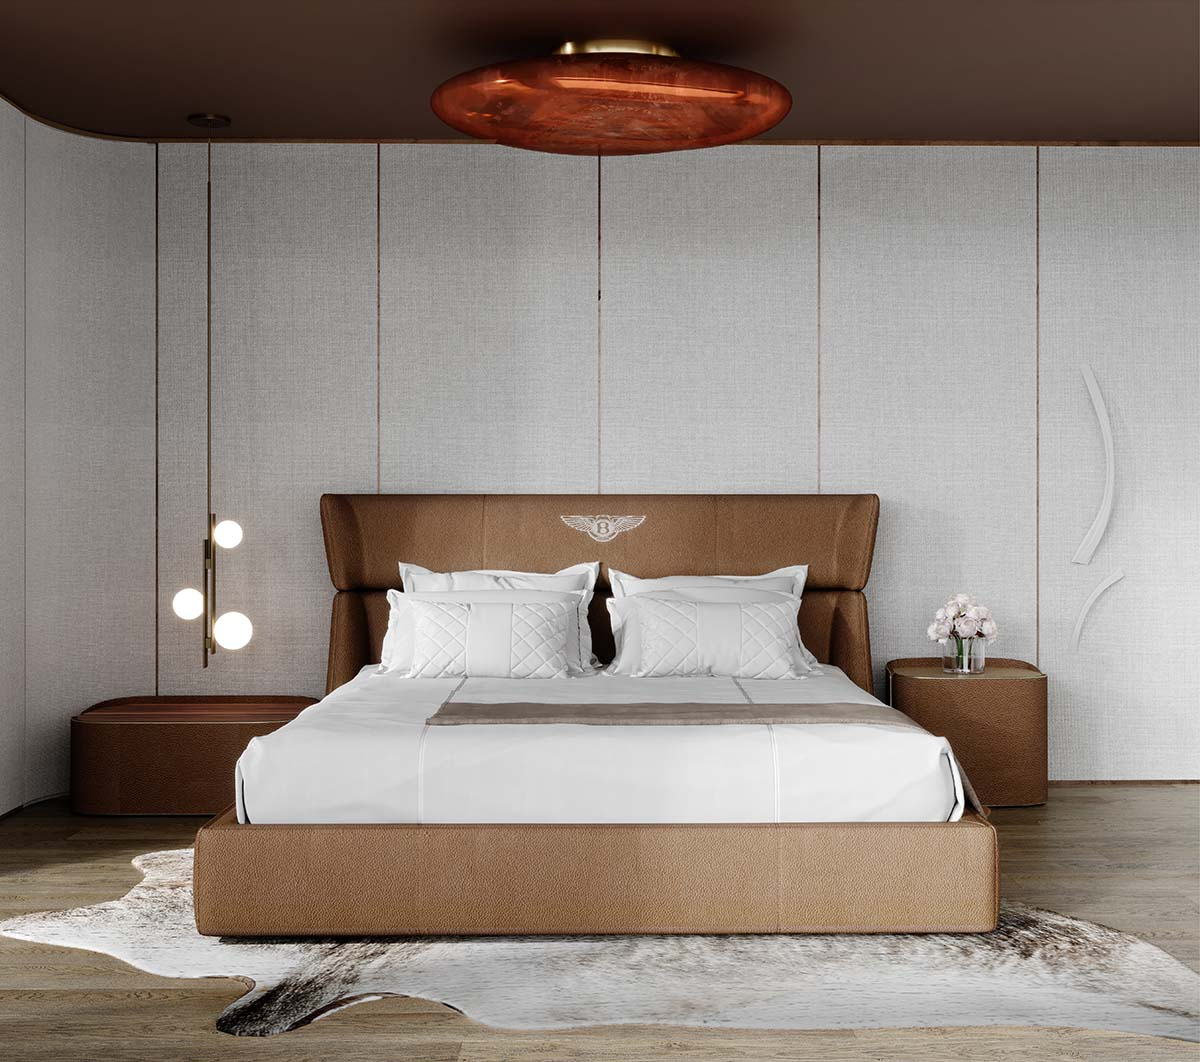 Luxury bedroom with neutral tones wit lights by Fendi and bed by Bentley with frontal view